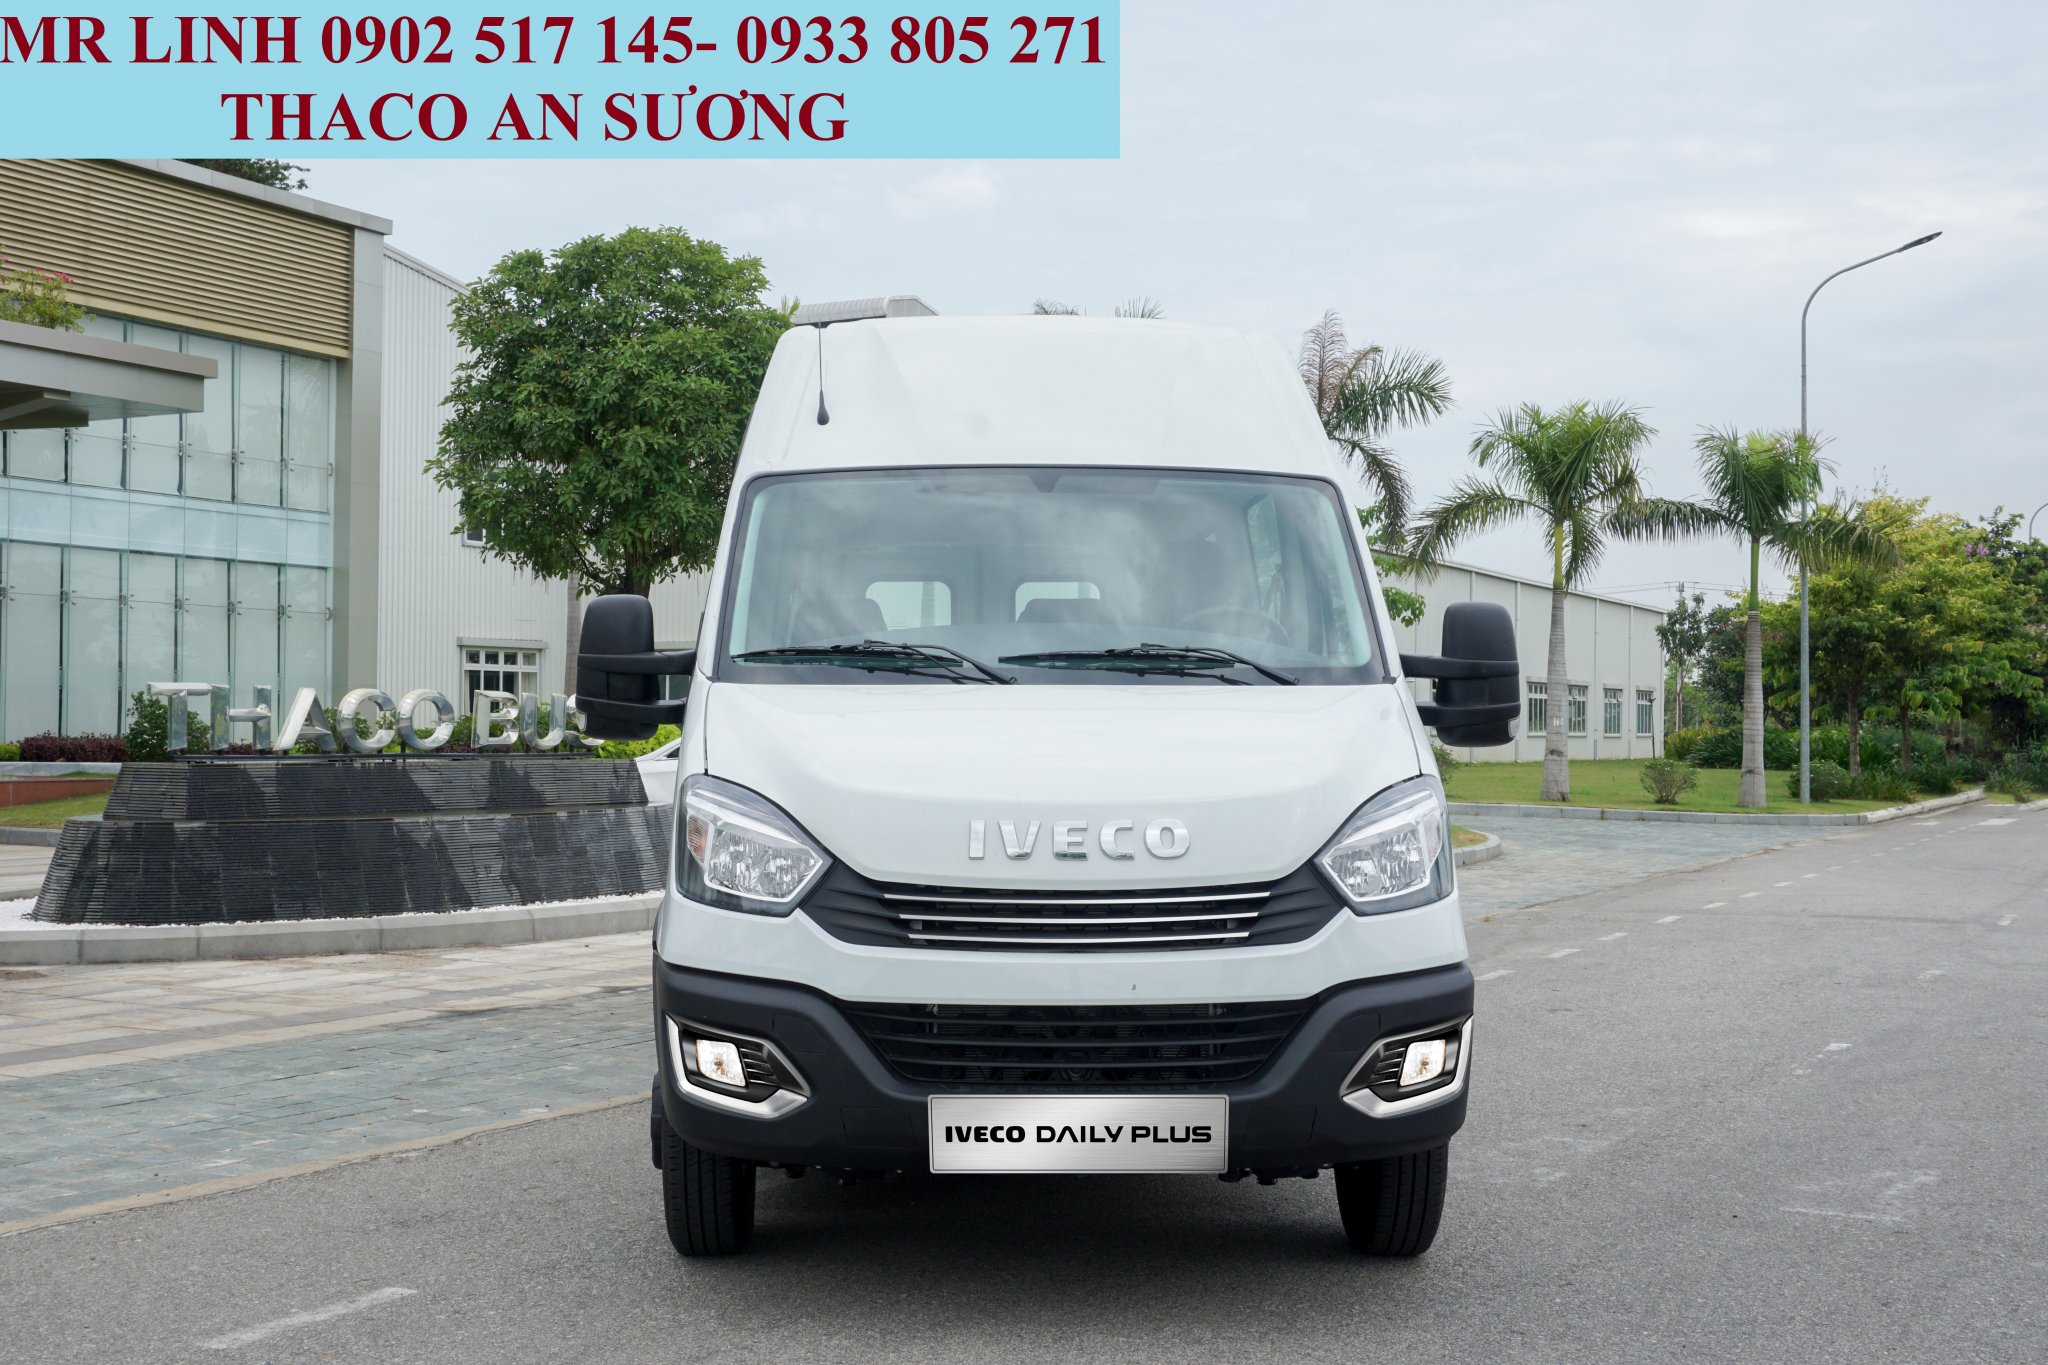 Iveco Daily Plus (7).JPG